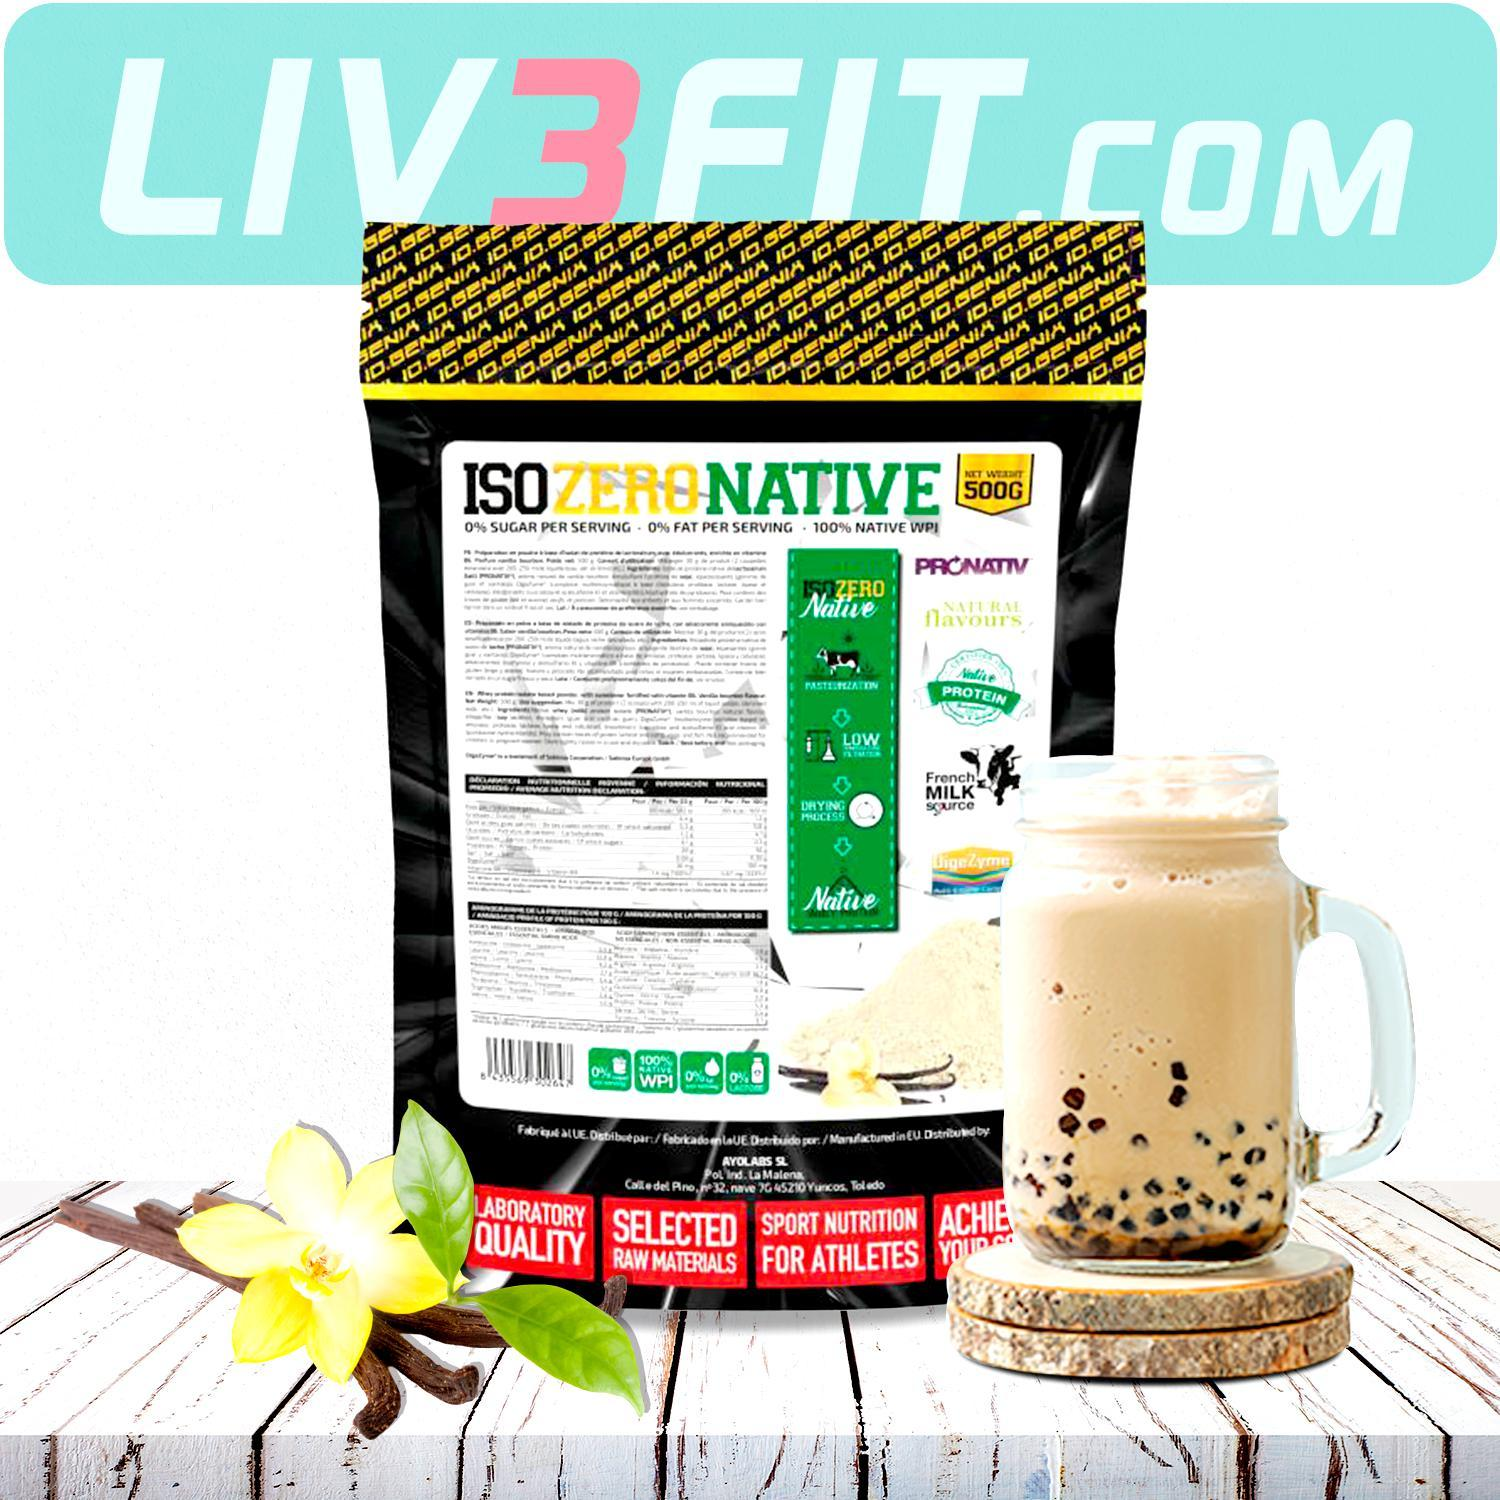 IOGENIX ISO ZERO NATIVE - ProNativ® 500G - LIV3FIT